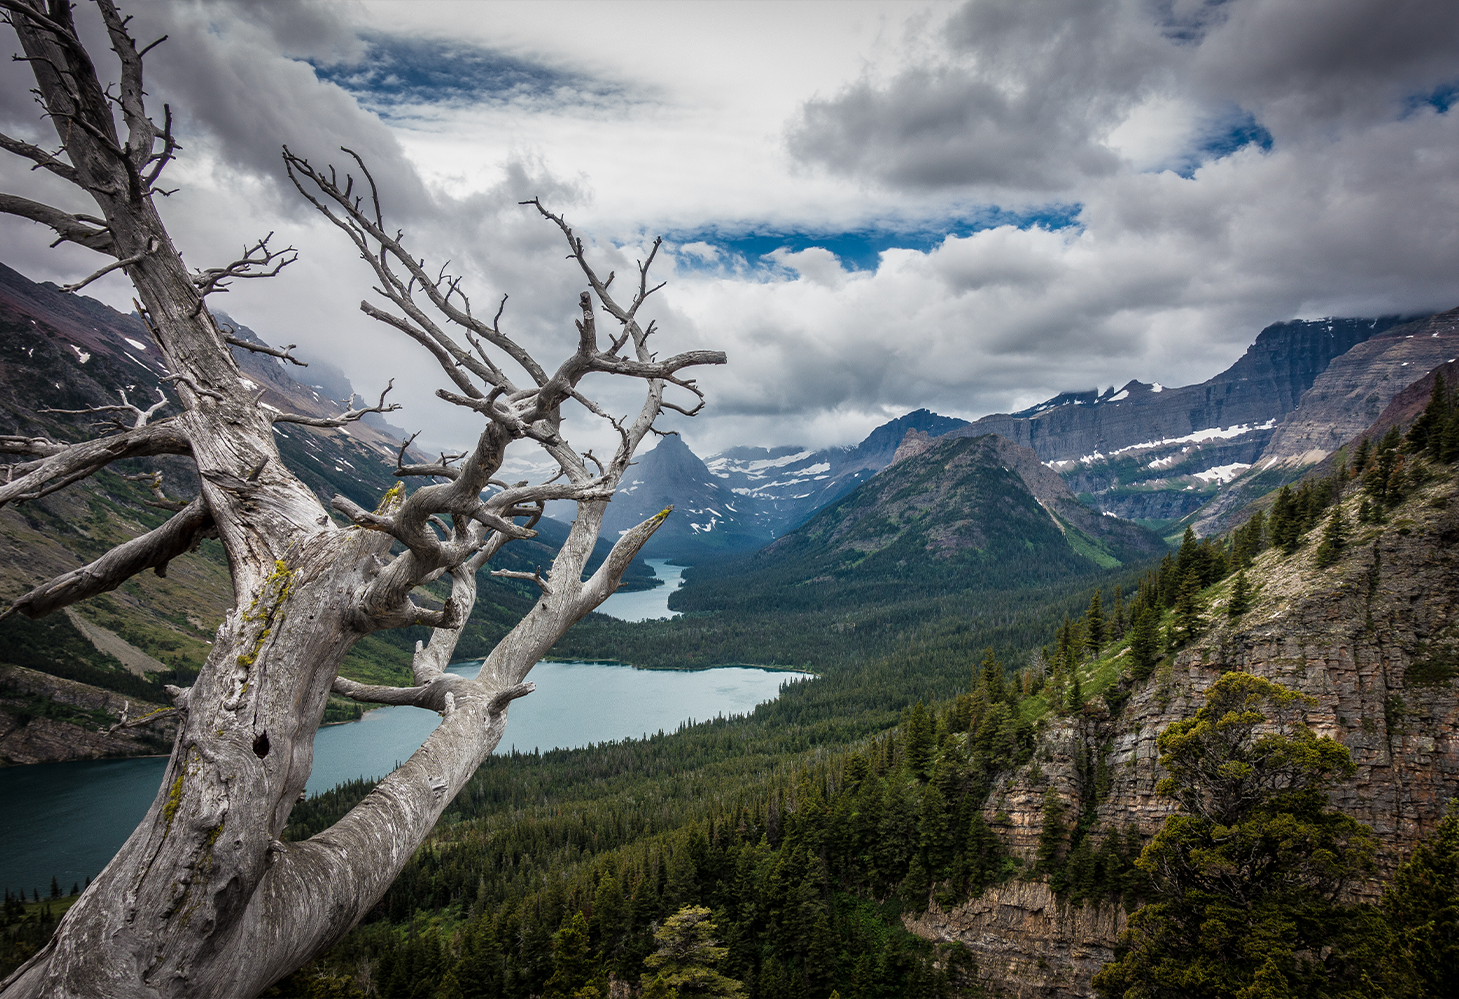 A dead whitebark pine tree with bare, gnarled branches stands in contrast to a striking mountainous landscape in Glacier National Park